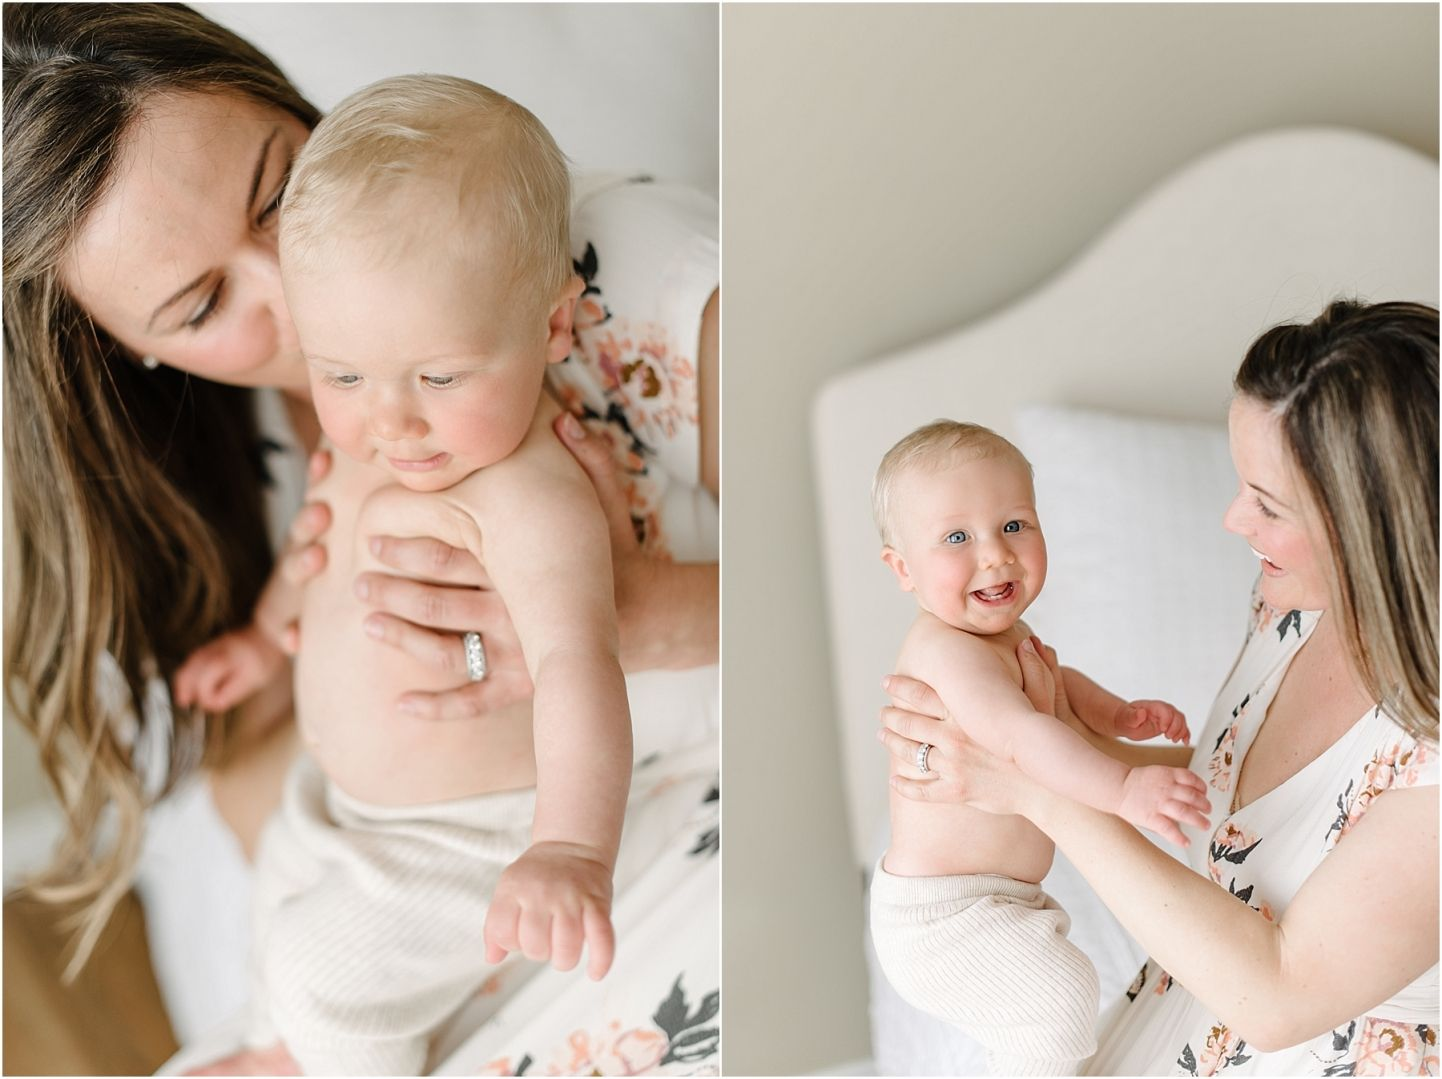 He was just about the happiest baby I have photographed! It was so nice seeing this beautiful little guy all grown up ! I also did this little guys newborn photos and mom and dad's maternity photos.This is really one of my favorite ages to capture. It's the perfect stage to capture indoors before…